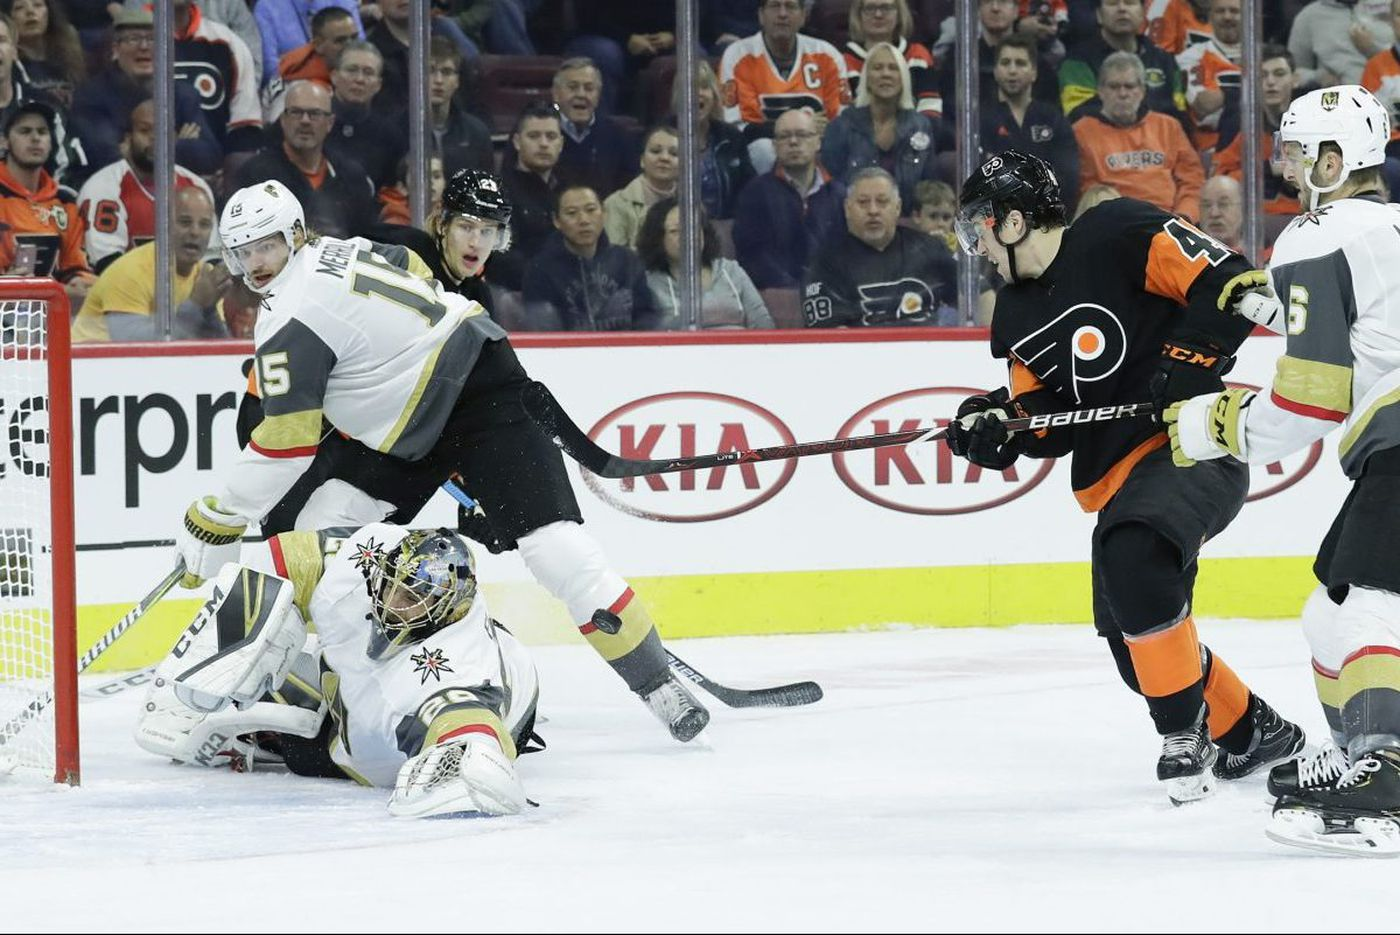 Flyers can't beat Marc-Andre Fleury, lose to Golden Knights